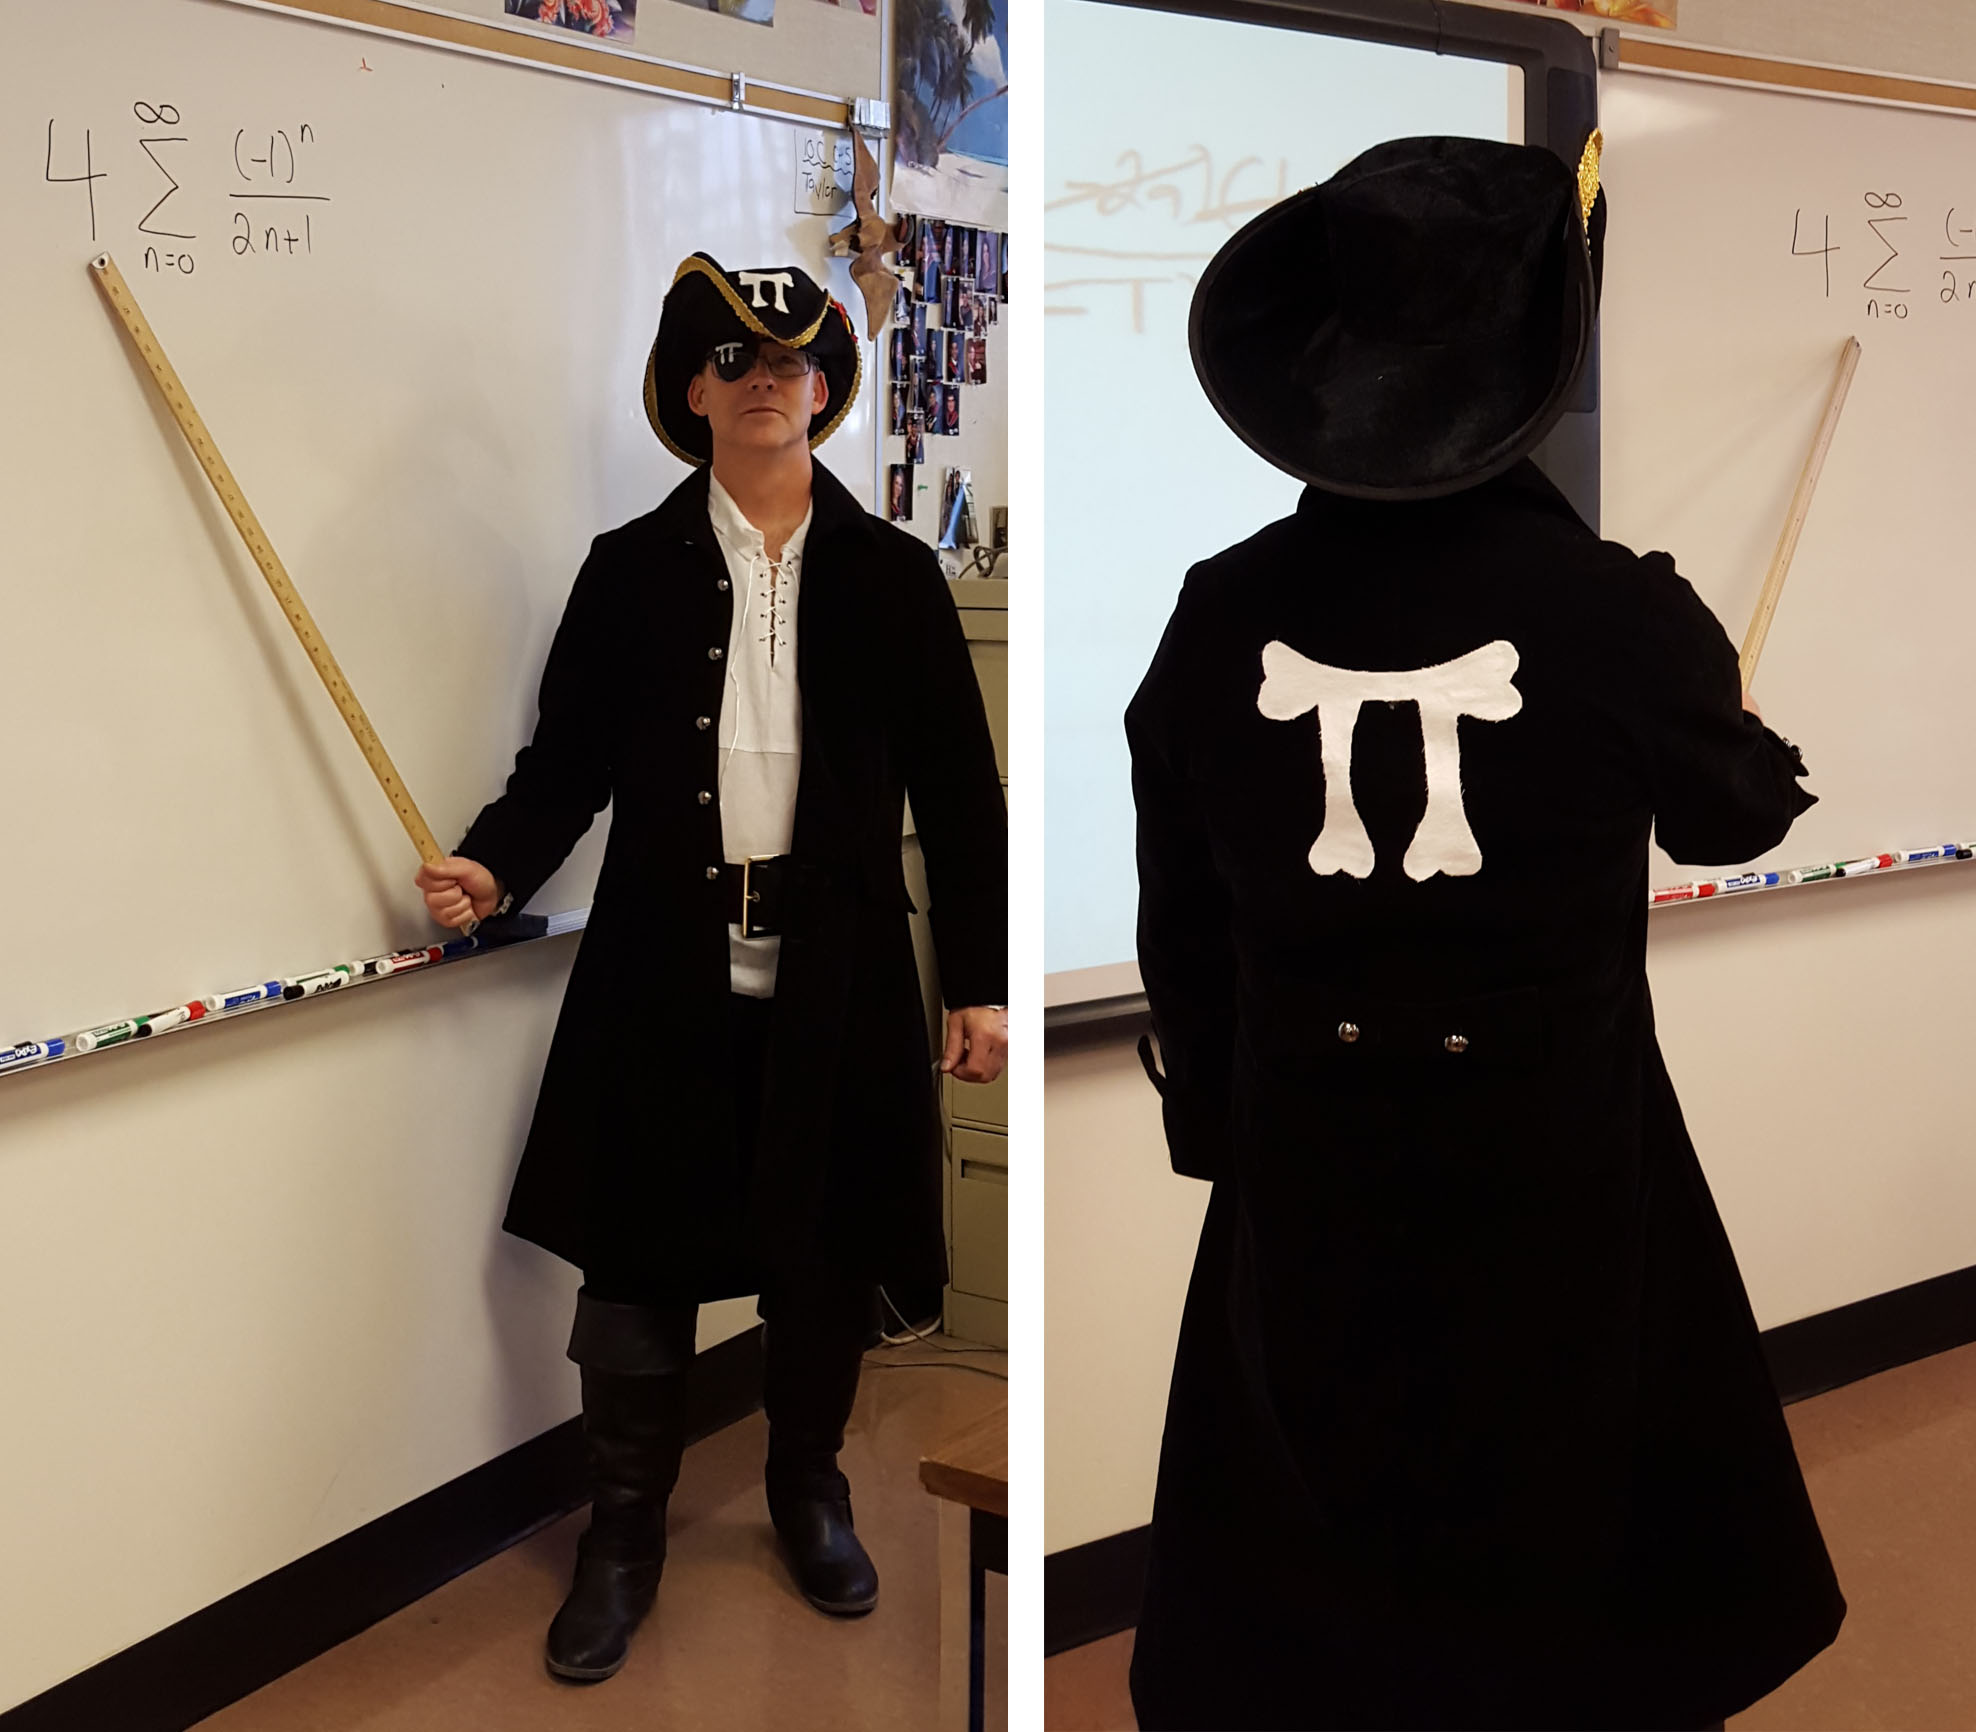 A teacher in a pirate outfit with the pi symbol on the back of it